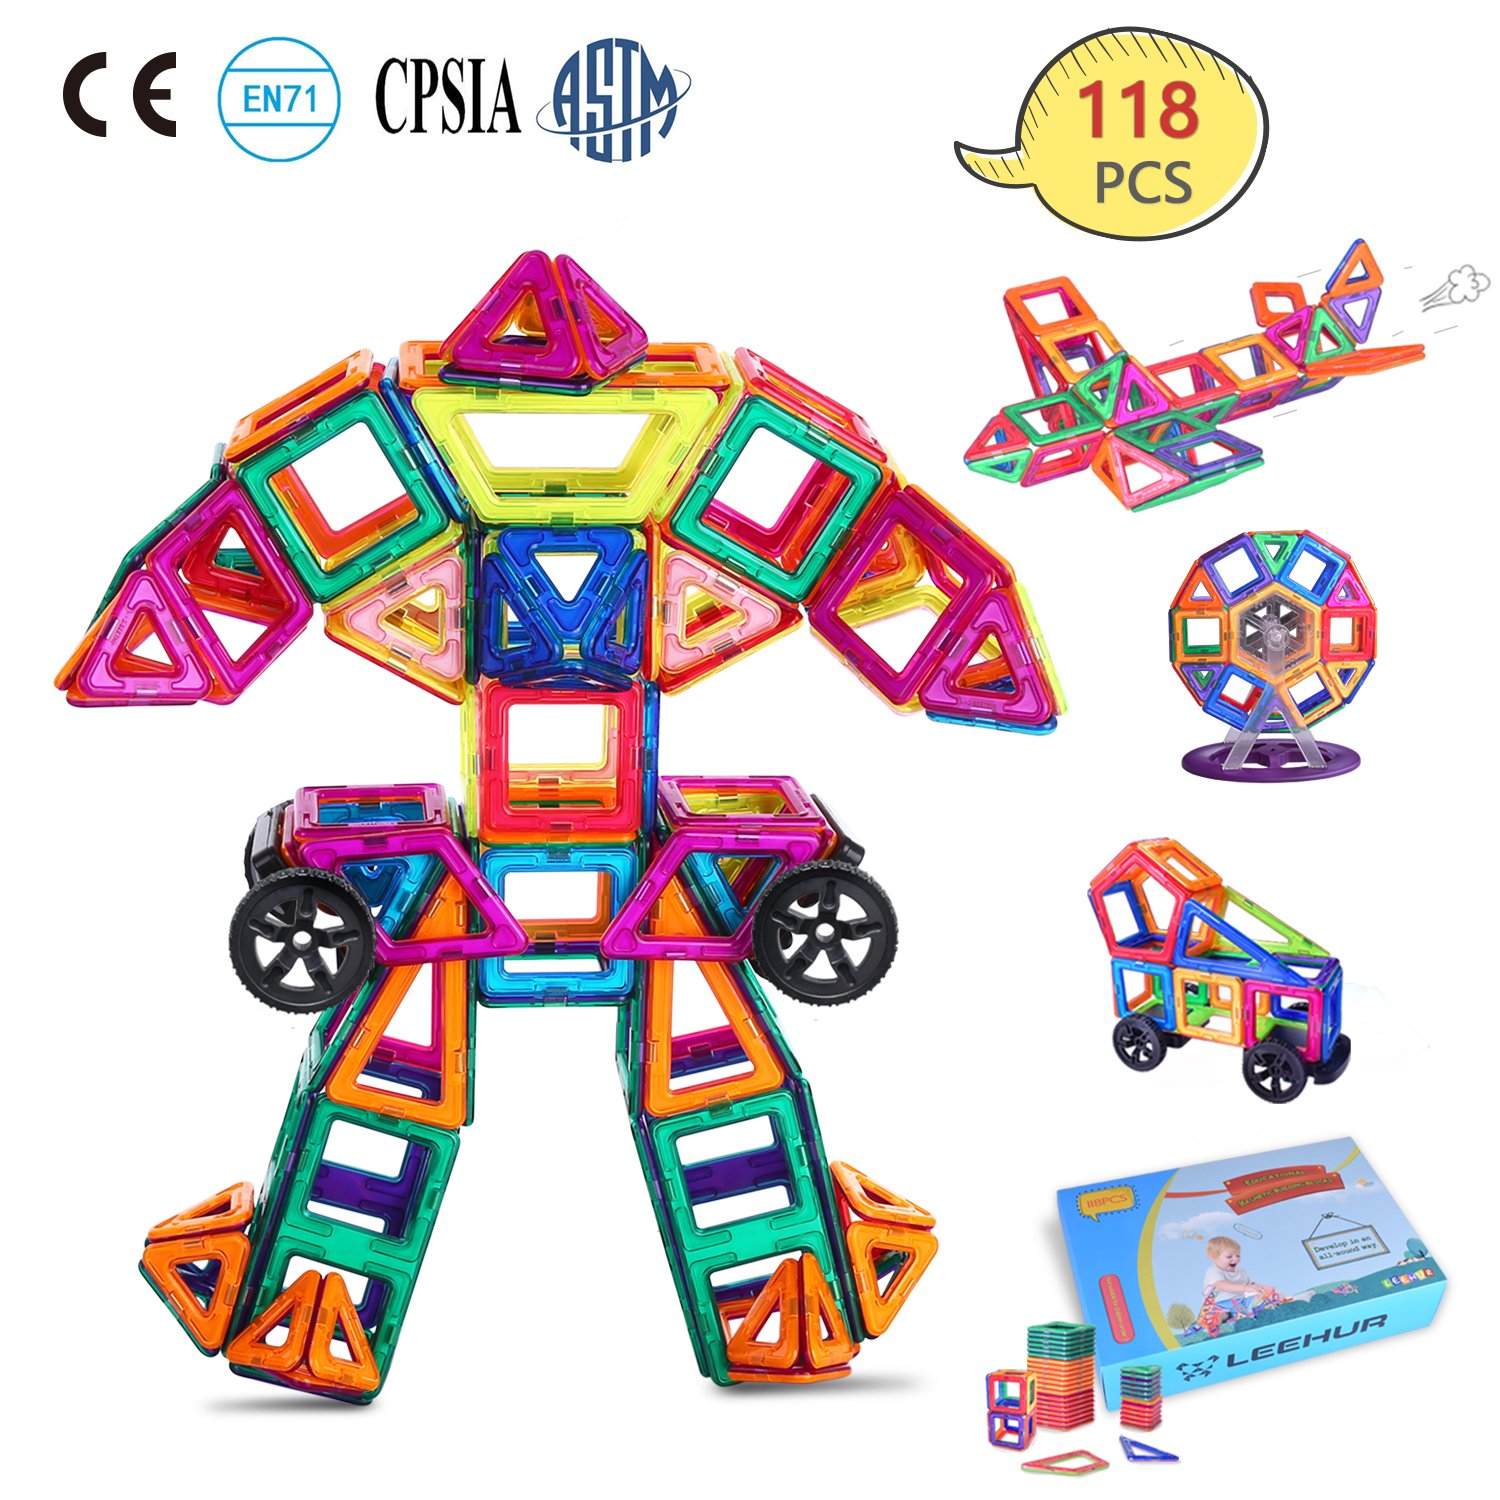 LEEHUR 118 Pcs Magnetic Tiles Magnet Building Blocks -100 Model- Large Size-STEM Educational Toys Preschool Activities Supplies with Storage Bag Creative Fun Science Kit Gifts for Kids Boys Girls Review